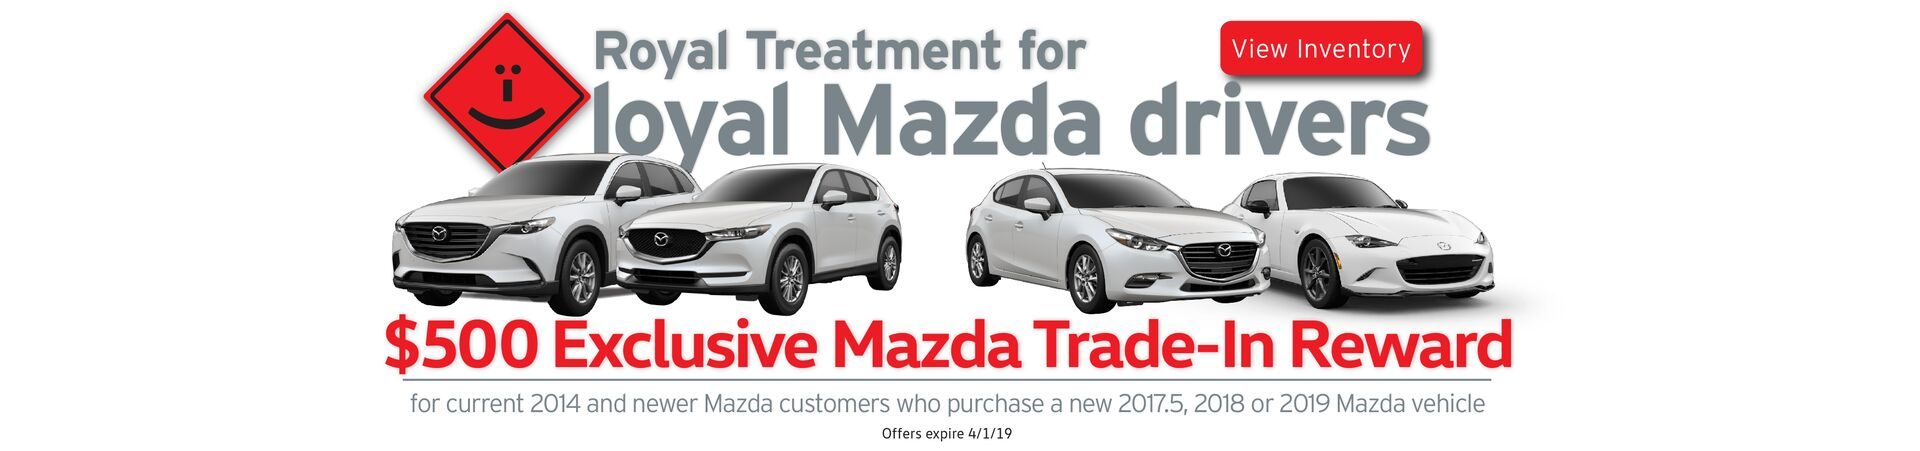 Mazda $500 Trade-In Reward towards new Mazda